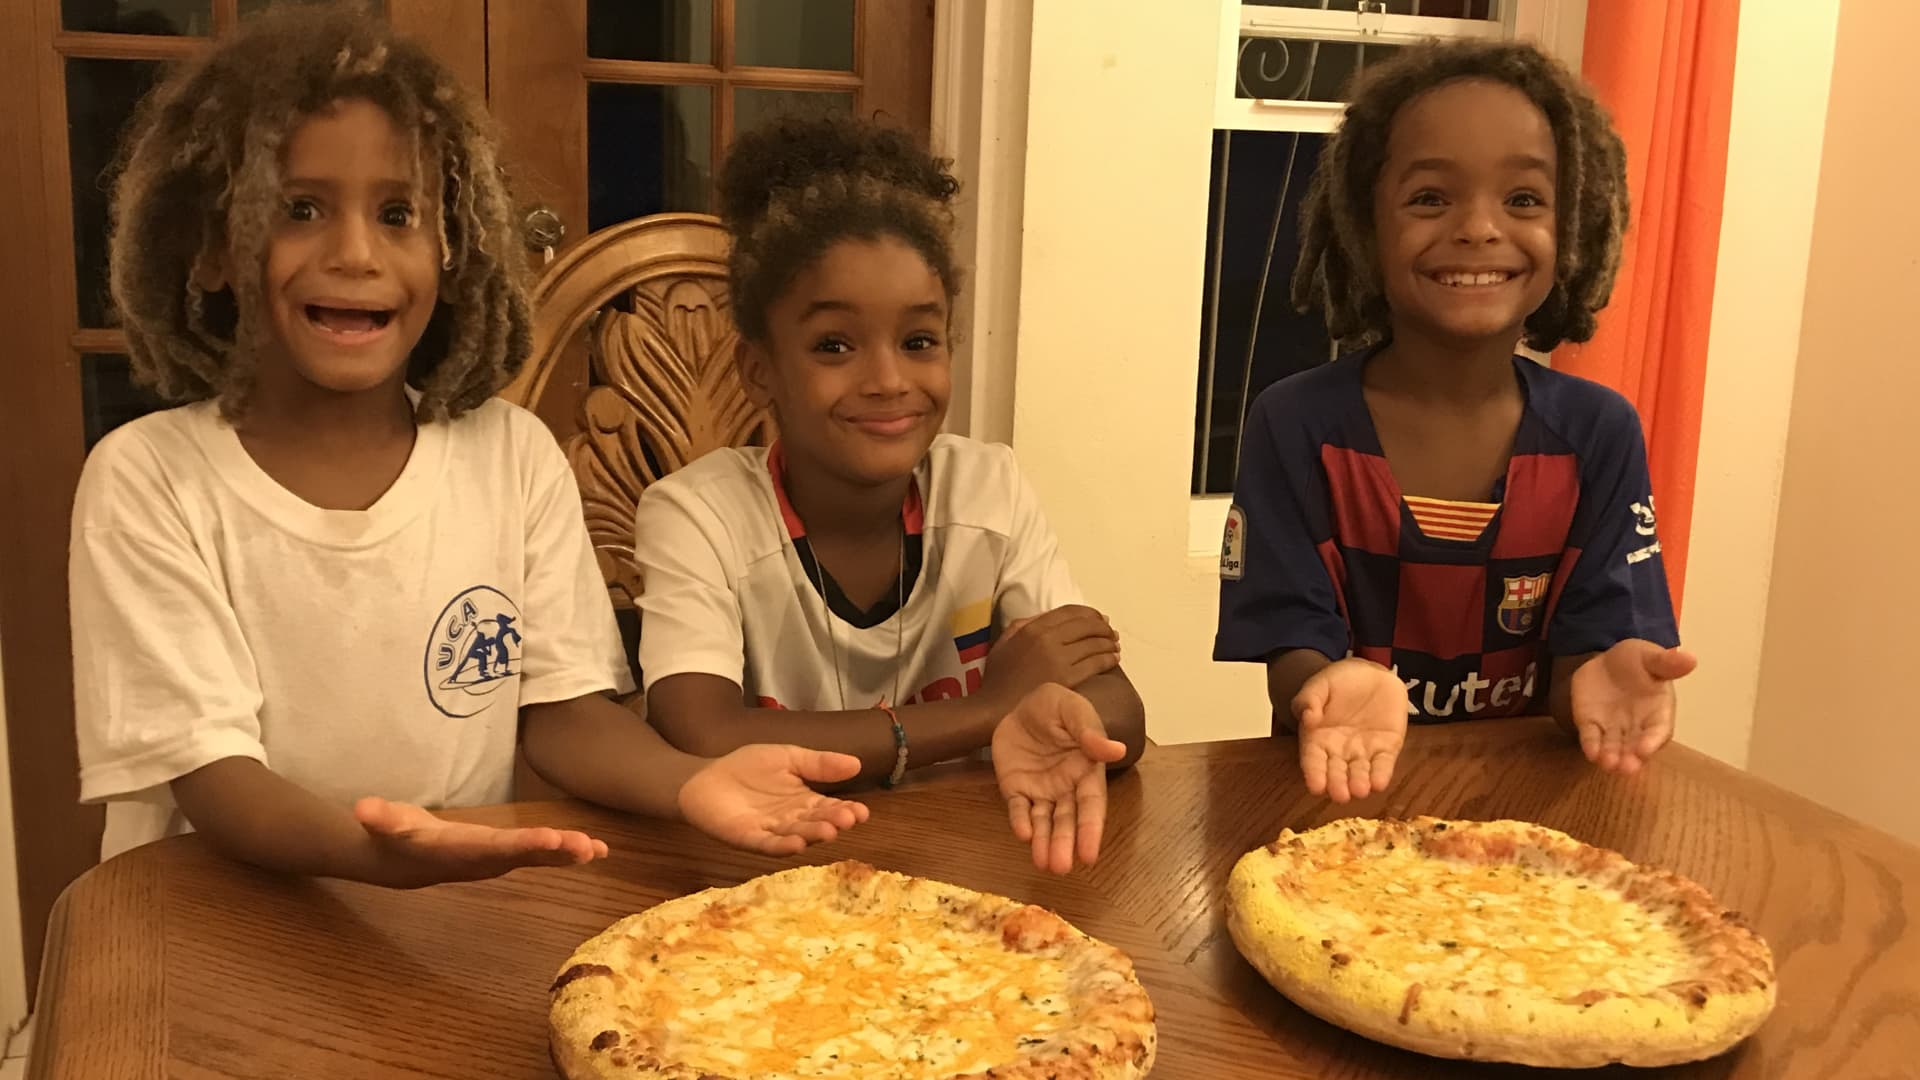 Pizza on Friday nights is one tradition we've kept alive since leaving the U.S.